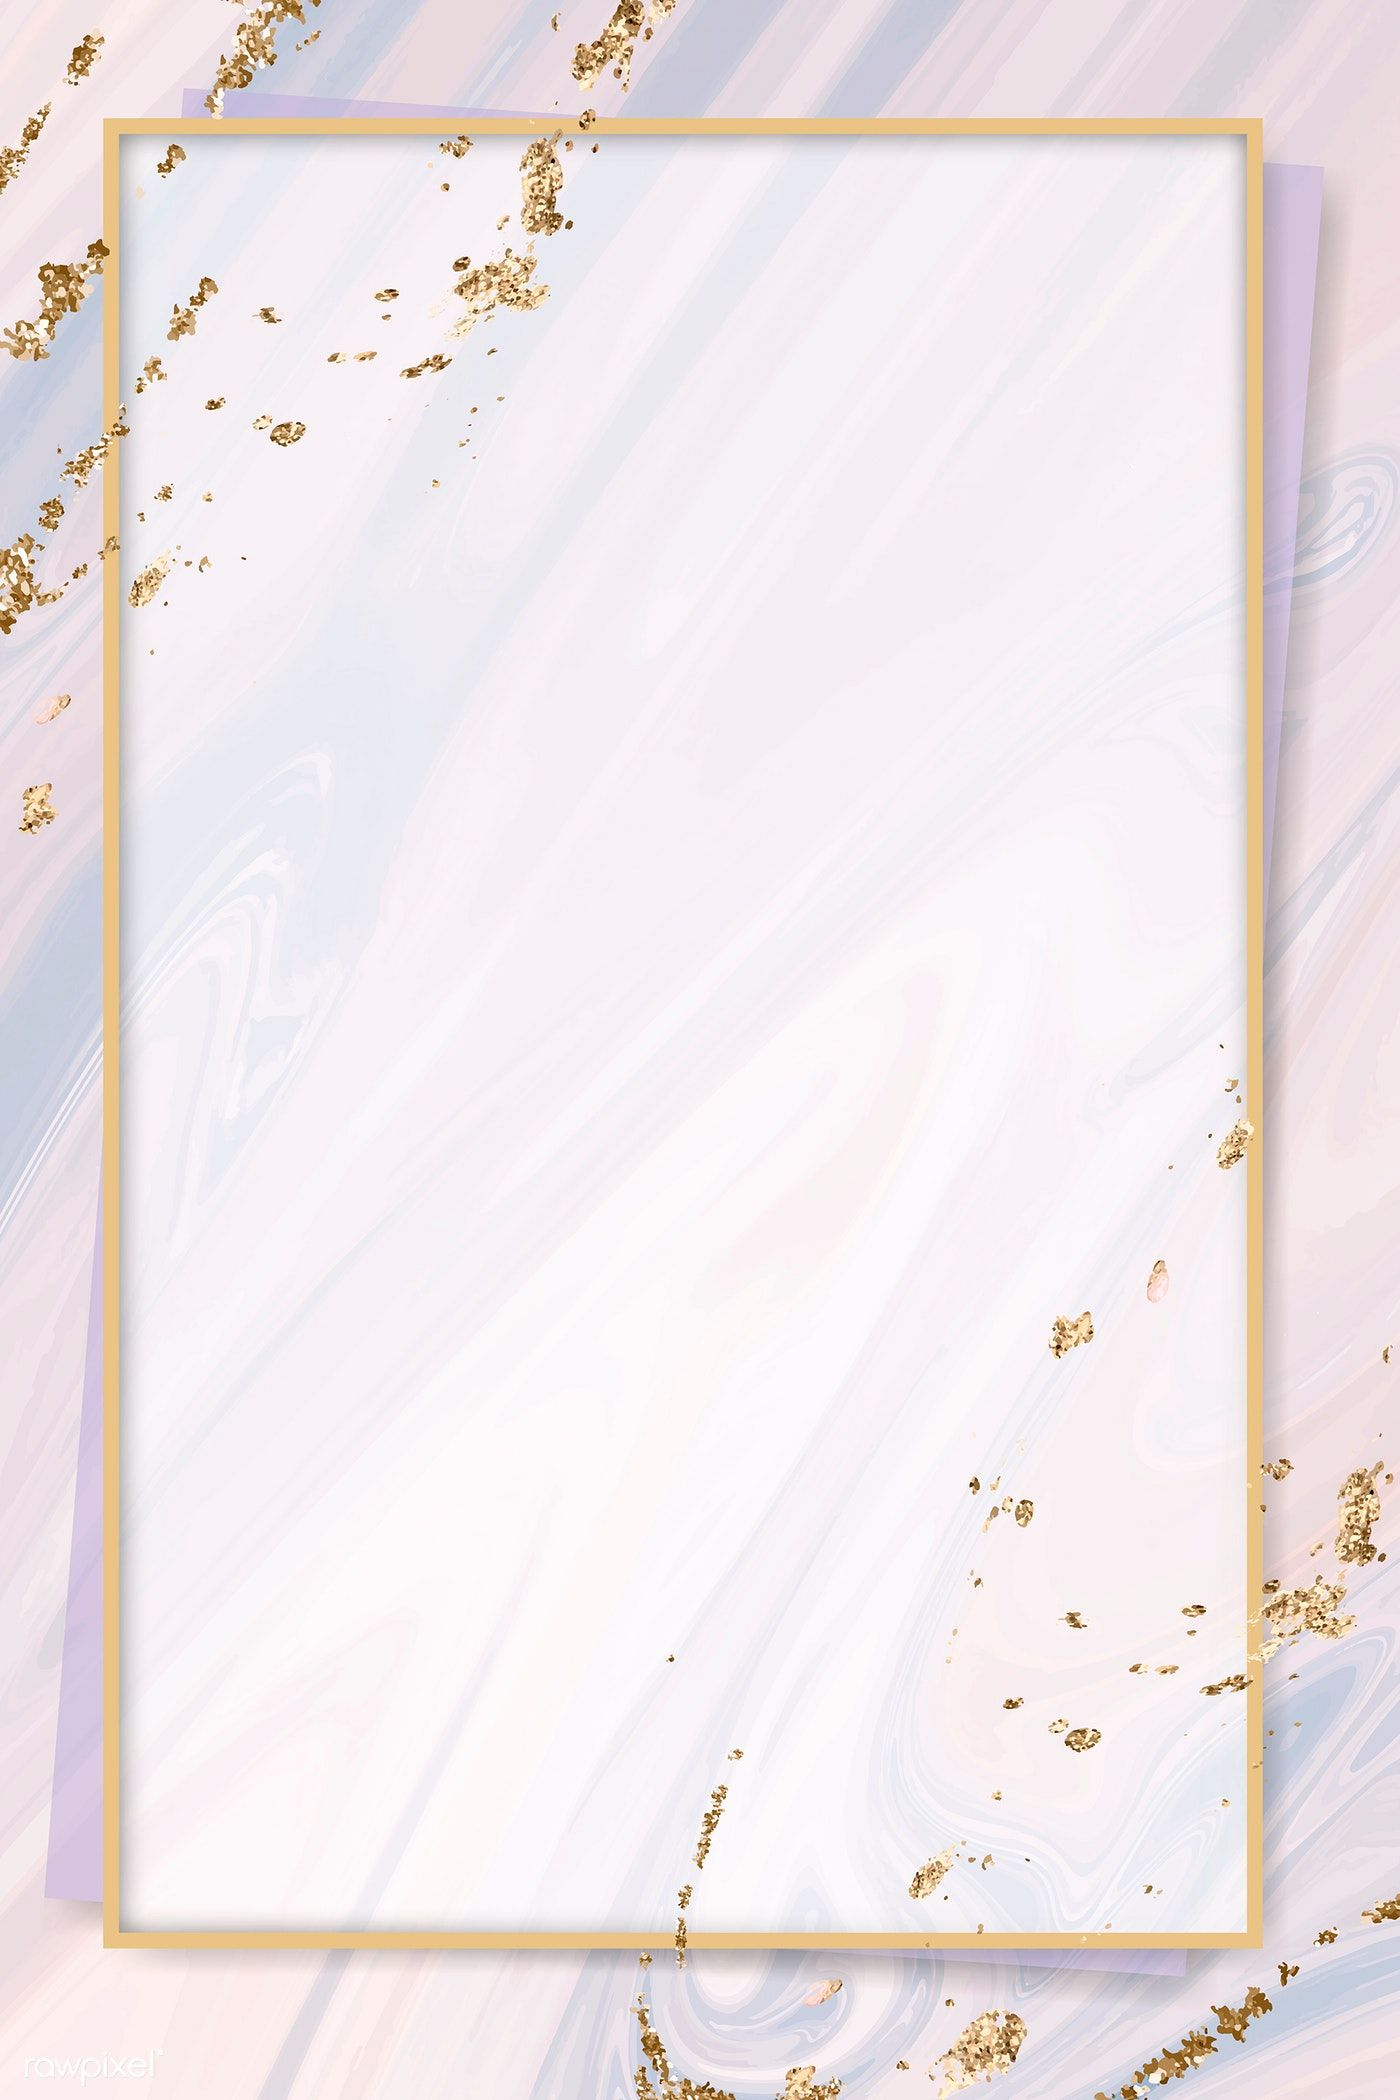 Pink Gold Frame On Pink Fluid Patterned Background Vector Premium Image By Ra Gold Wallpaper Background Flower Background Wallpaper Vector Background Pattern